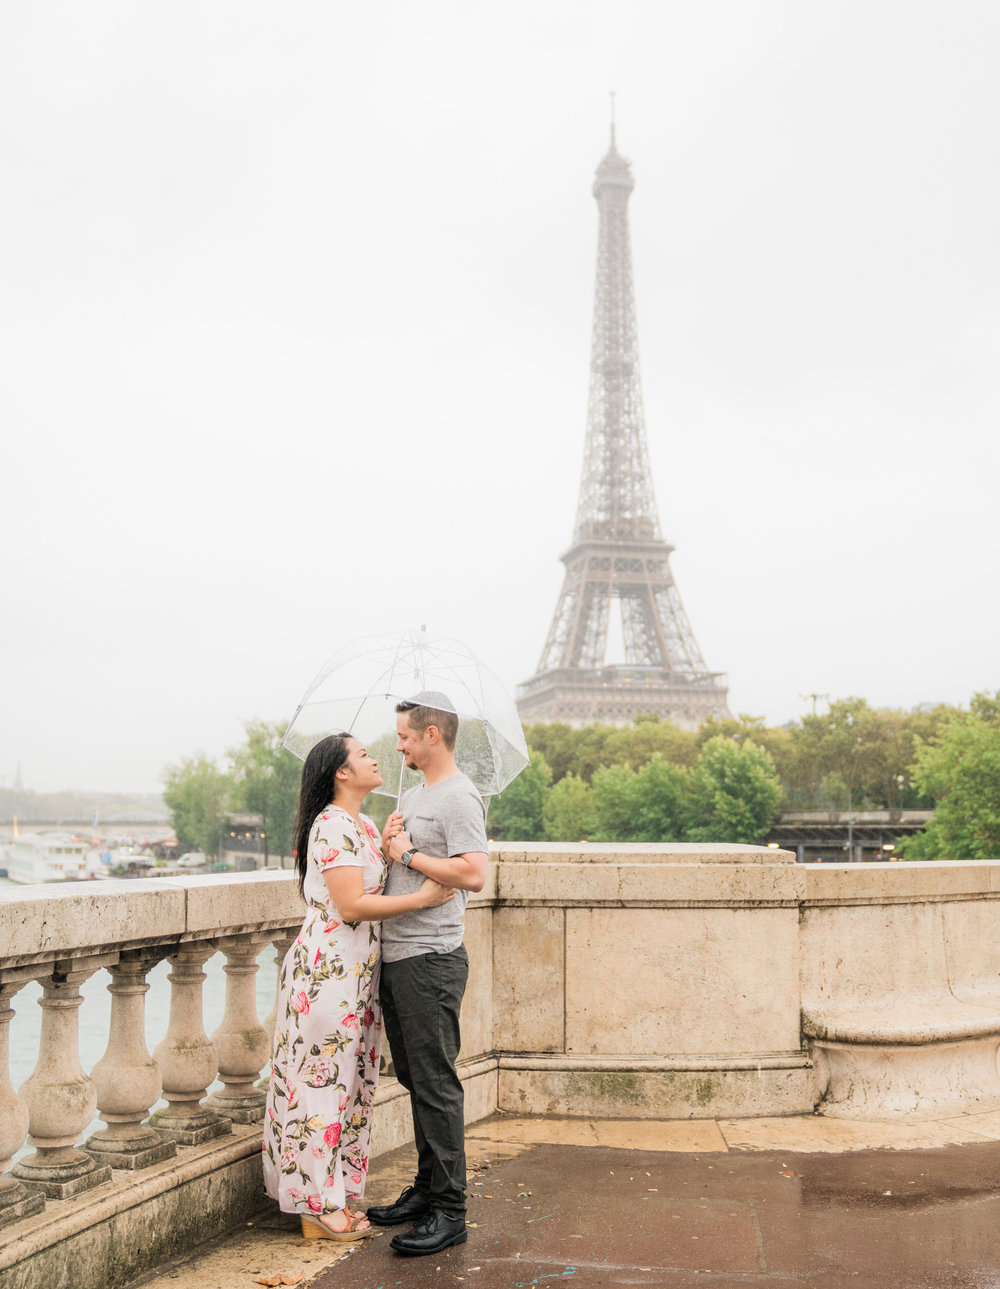 rainy couples engagement photo shoot in paris france at the eiffel tower